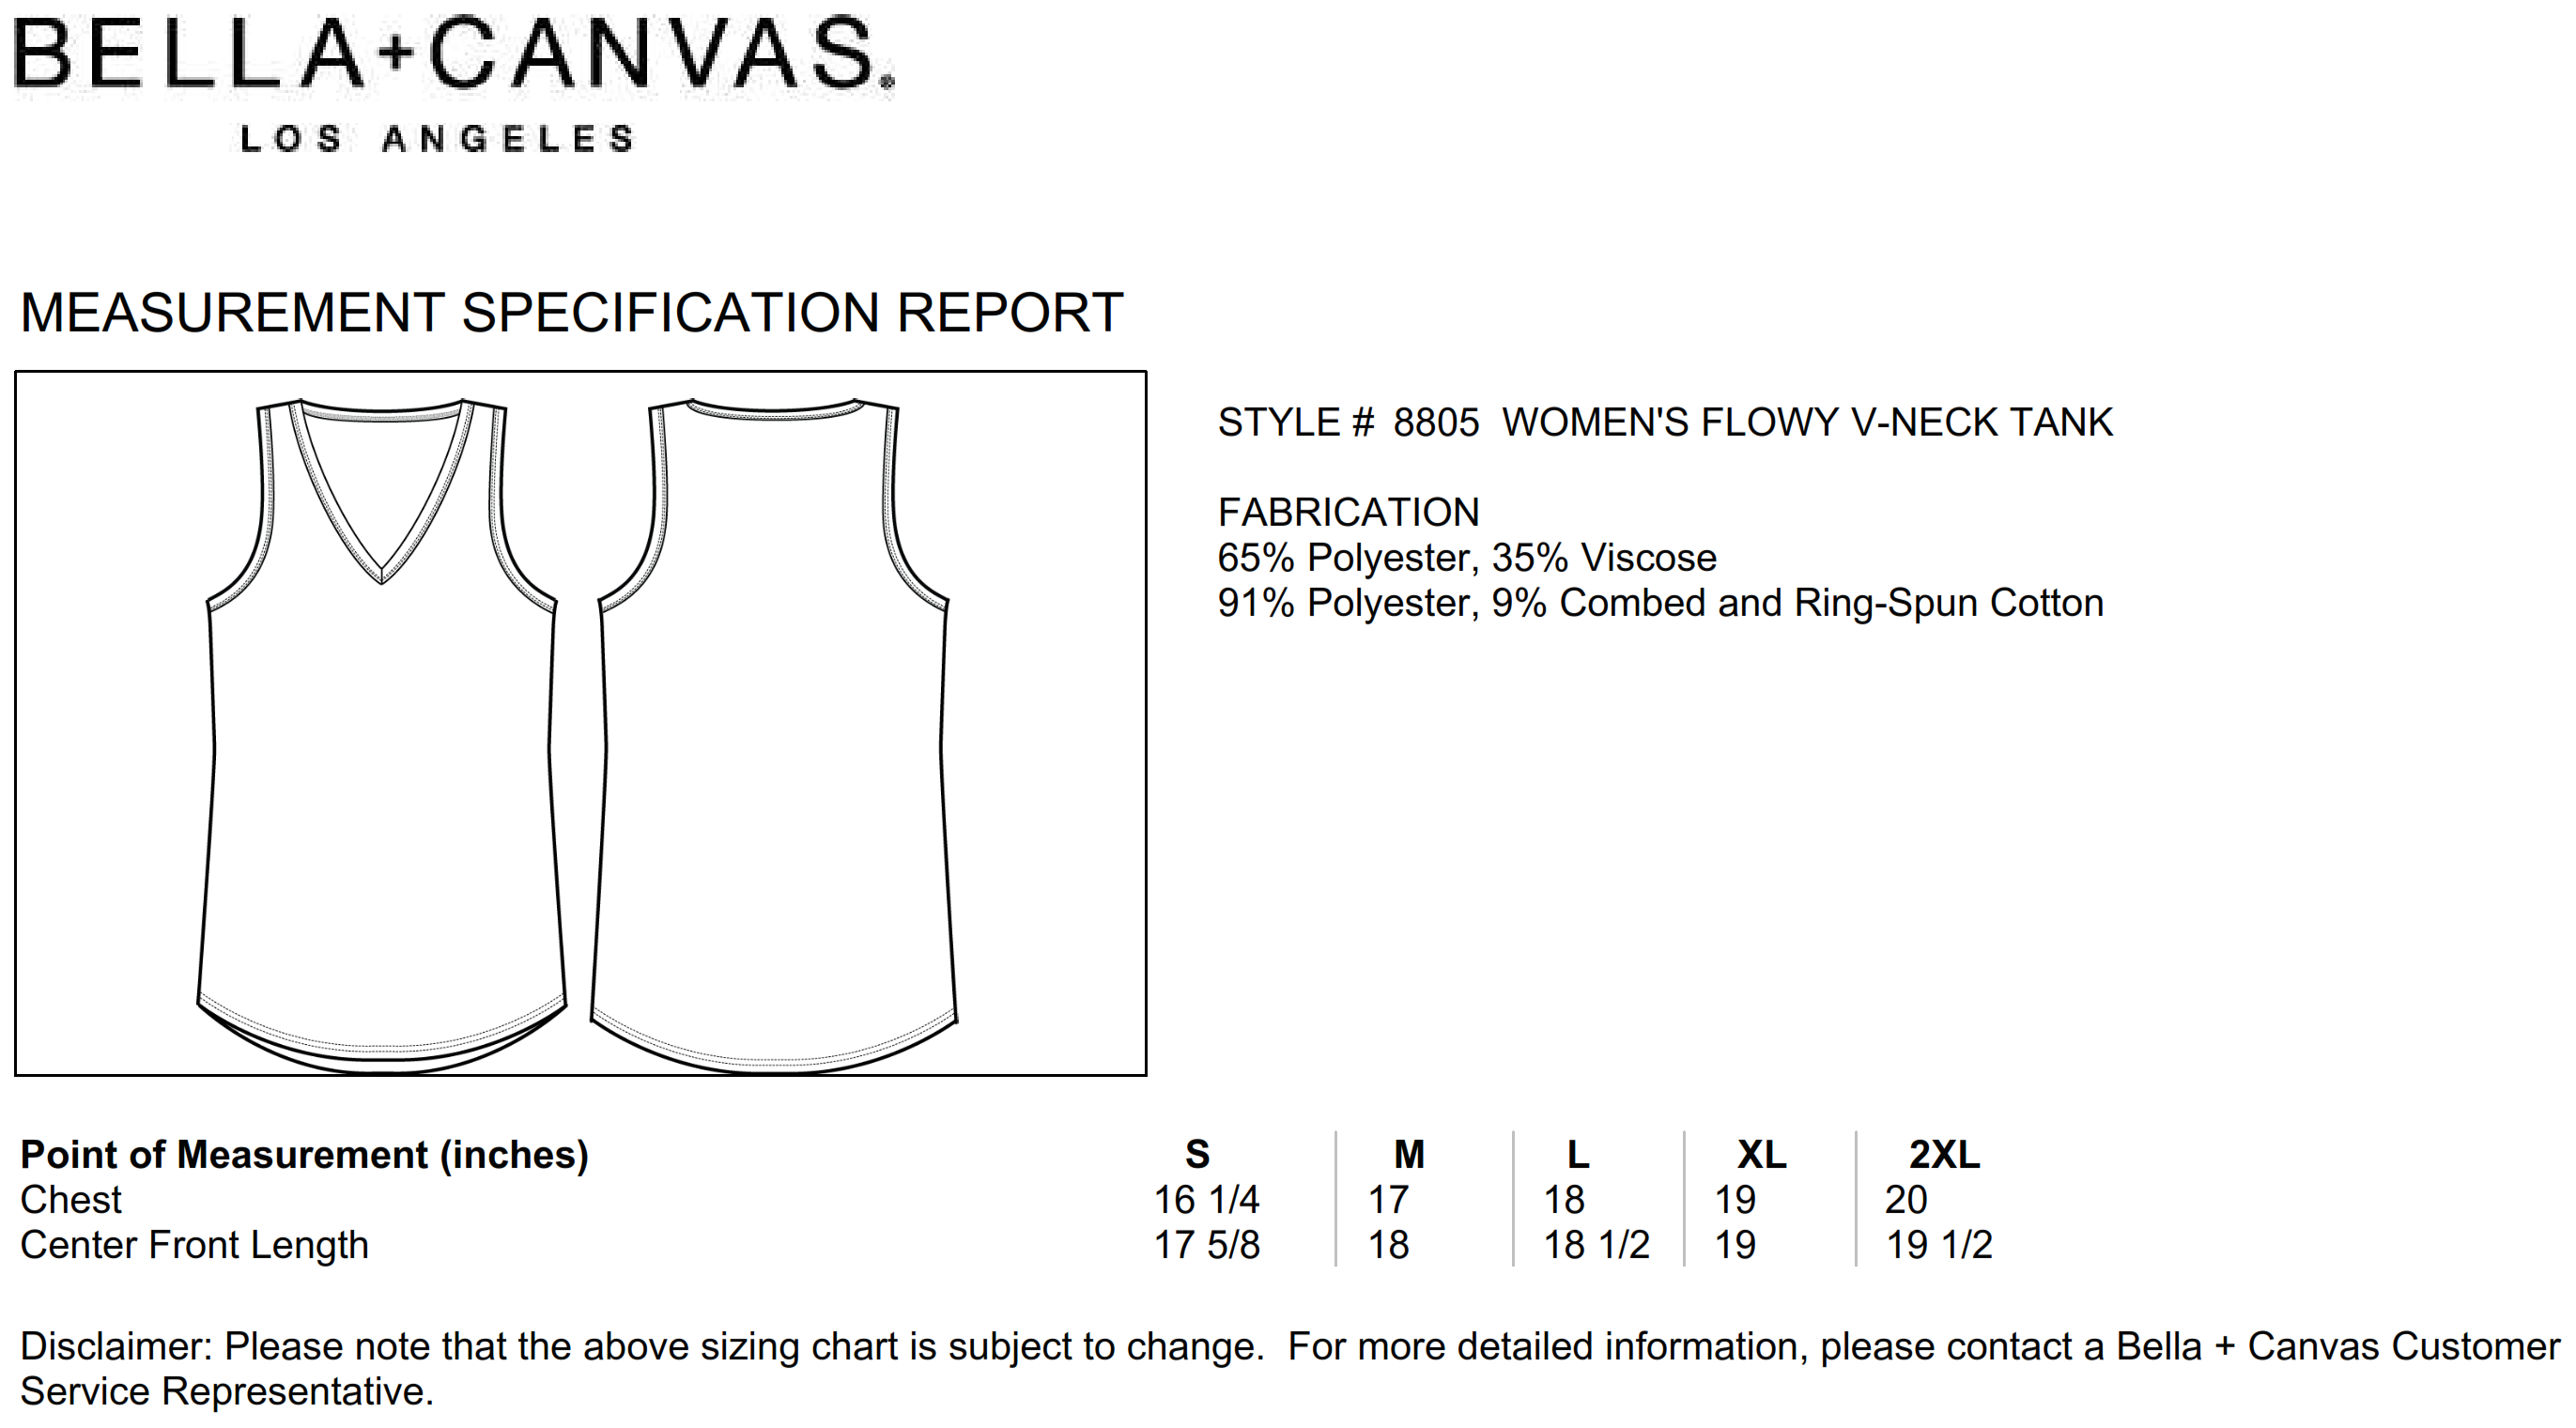 Bella+Canvas: Flowy V-Neck Tank 8805